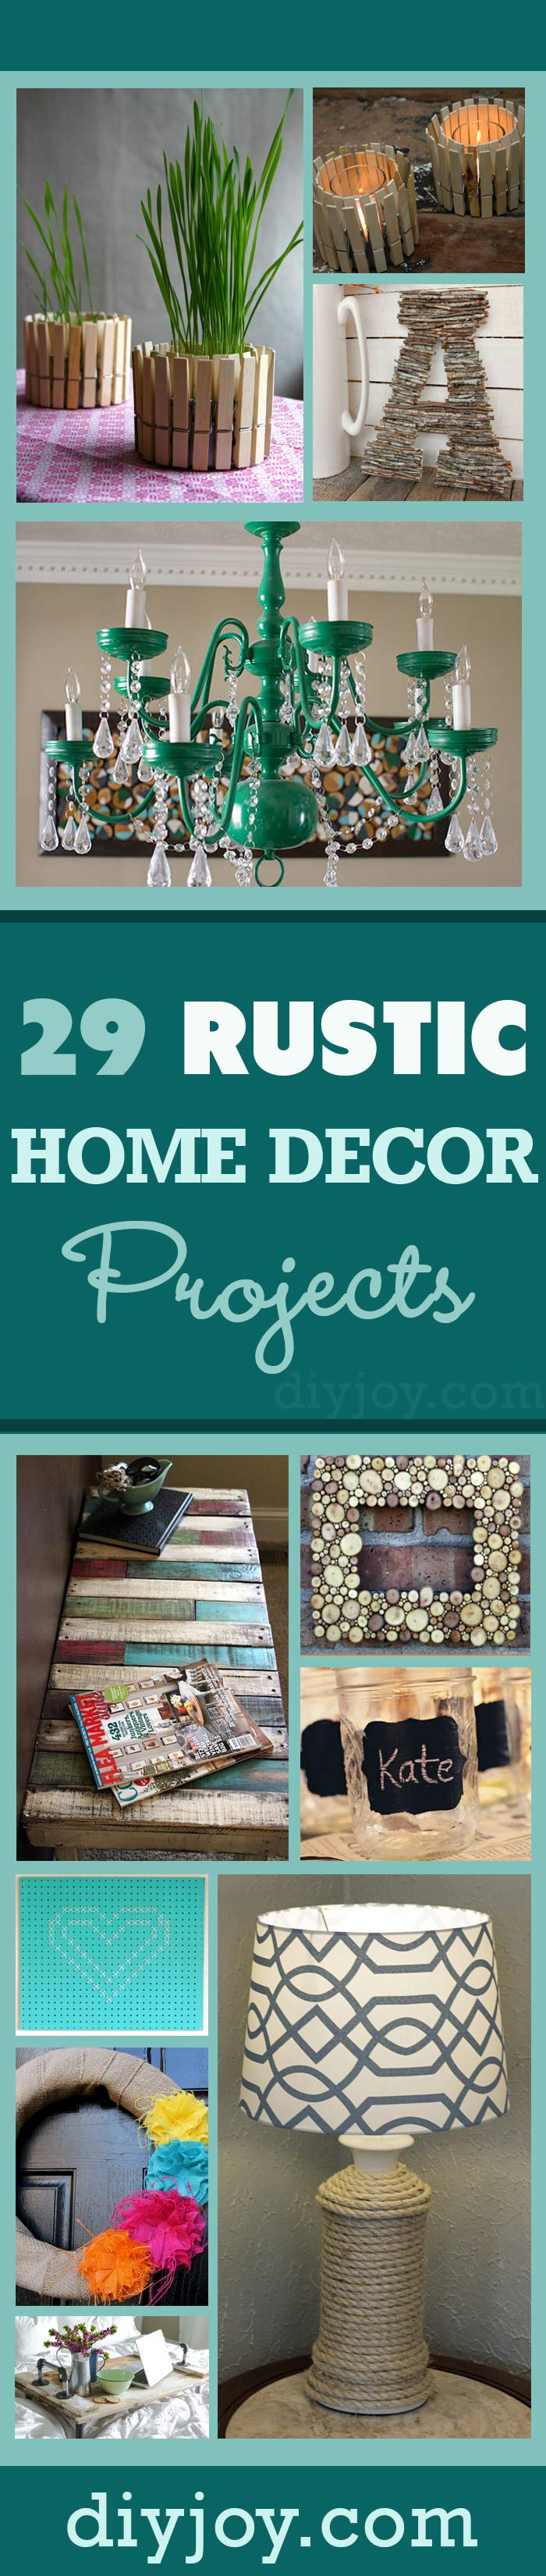 Do It Yourself Home Decorating Ideas: 29 Rustic DIY Home Decor Ideas